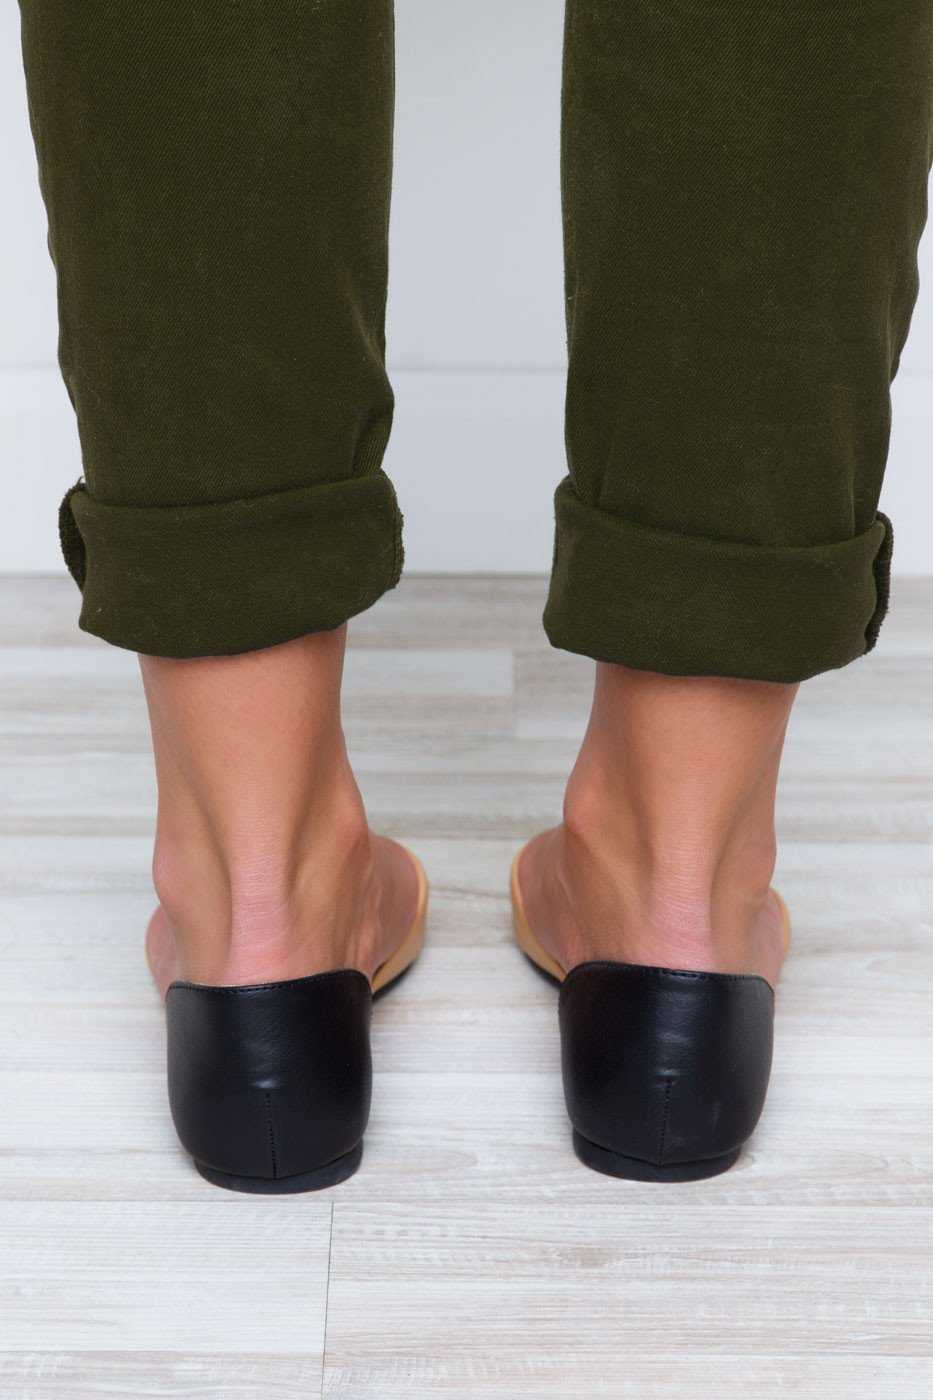 Shoes - All That Flats - Black/Nude